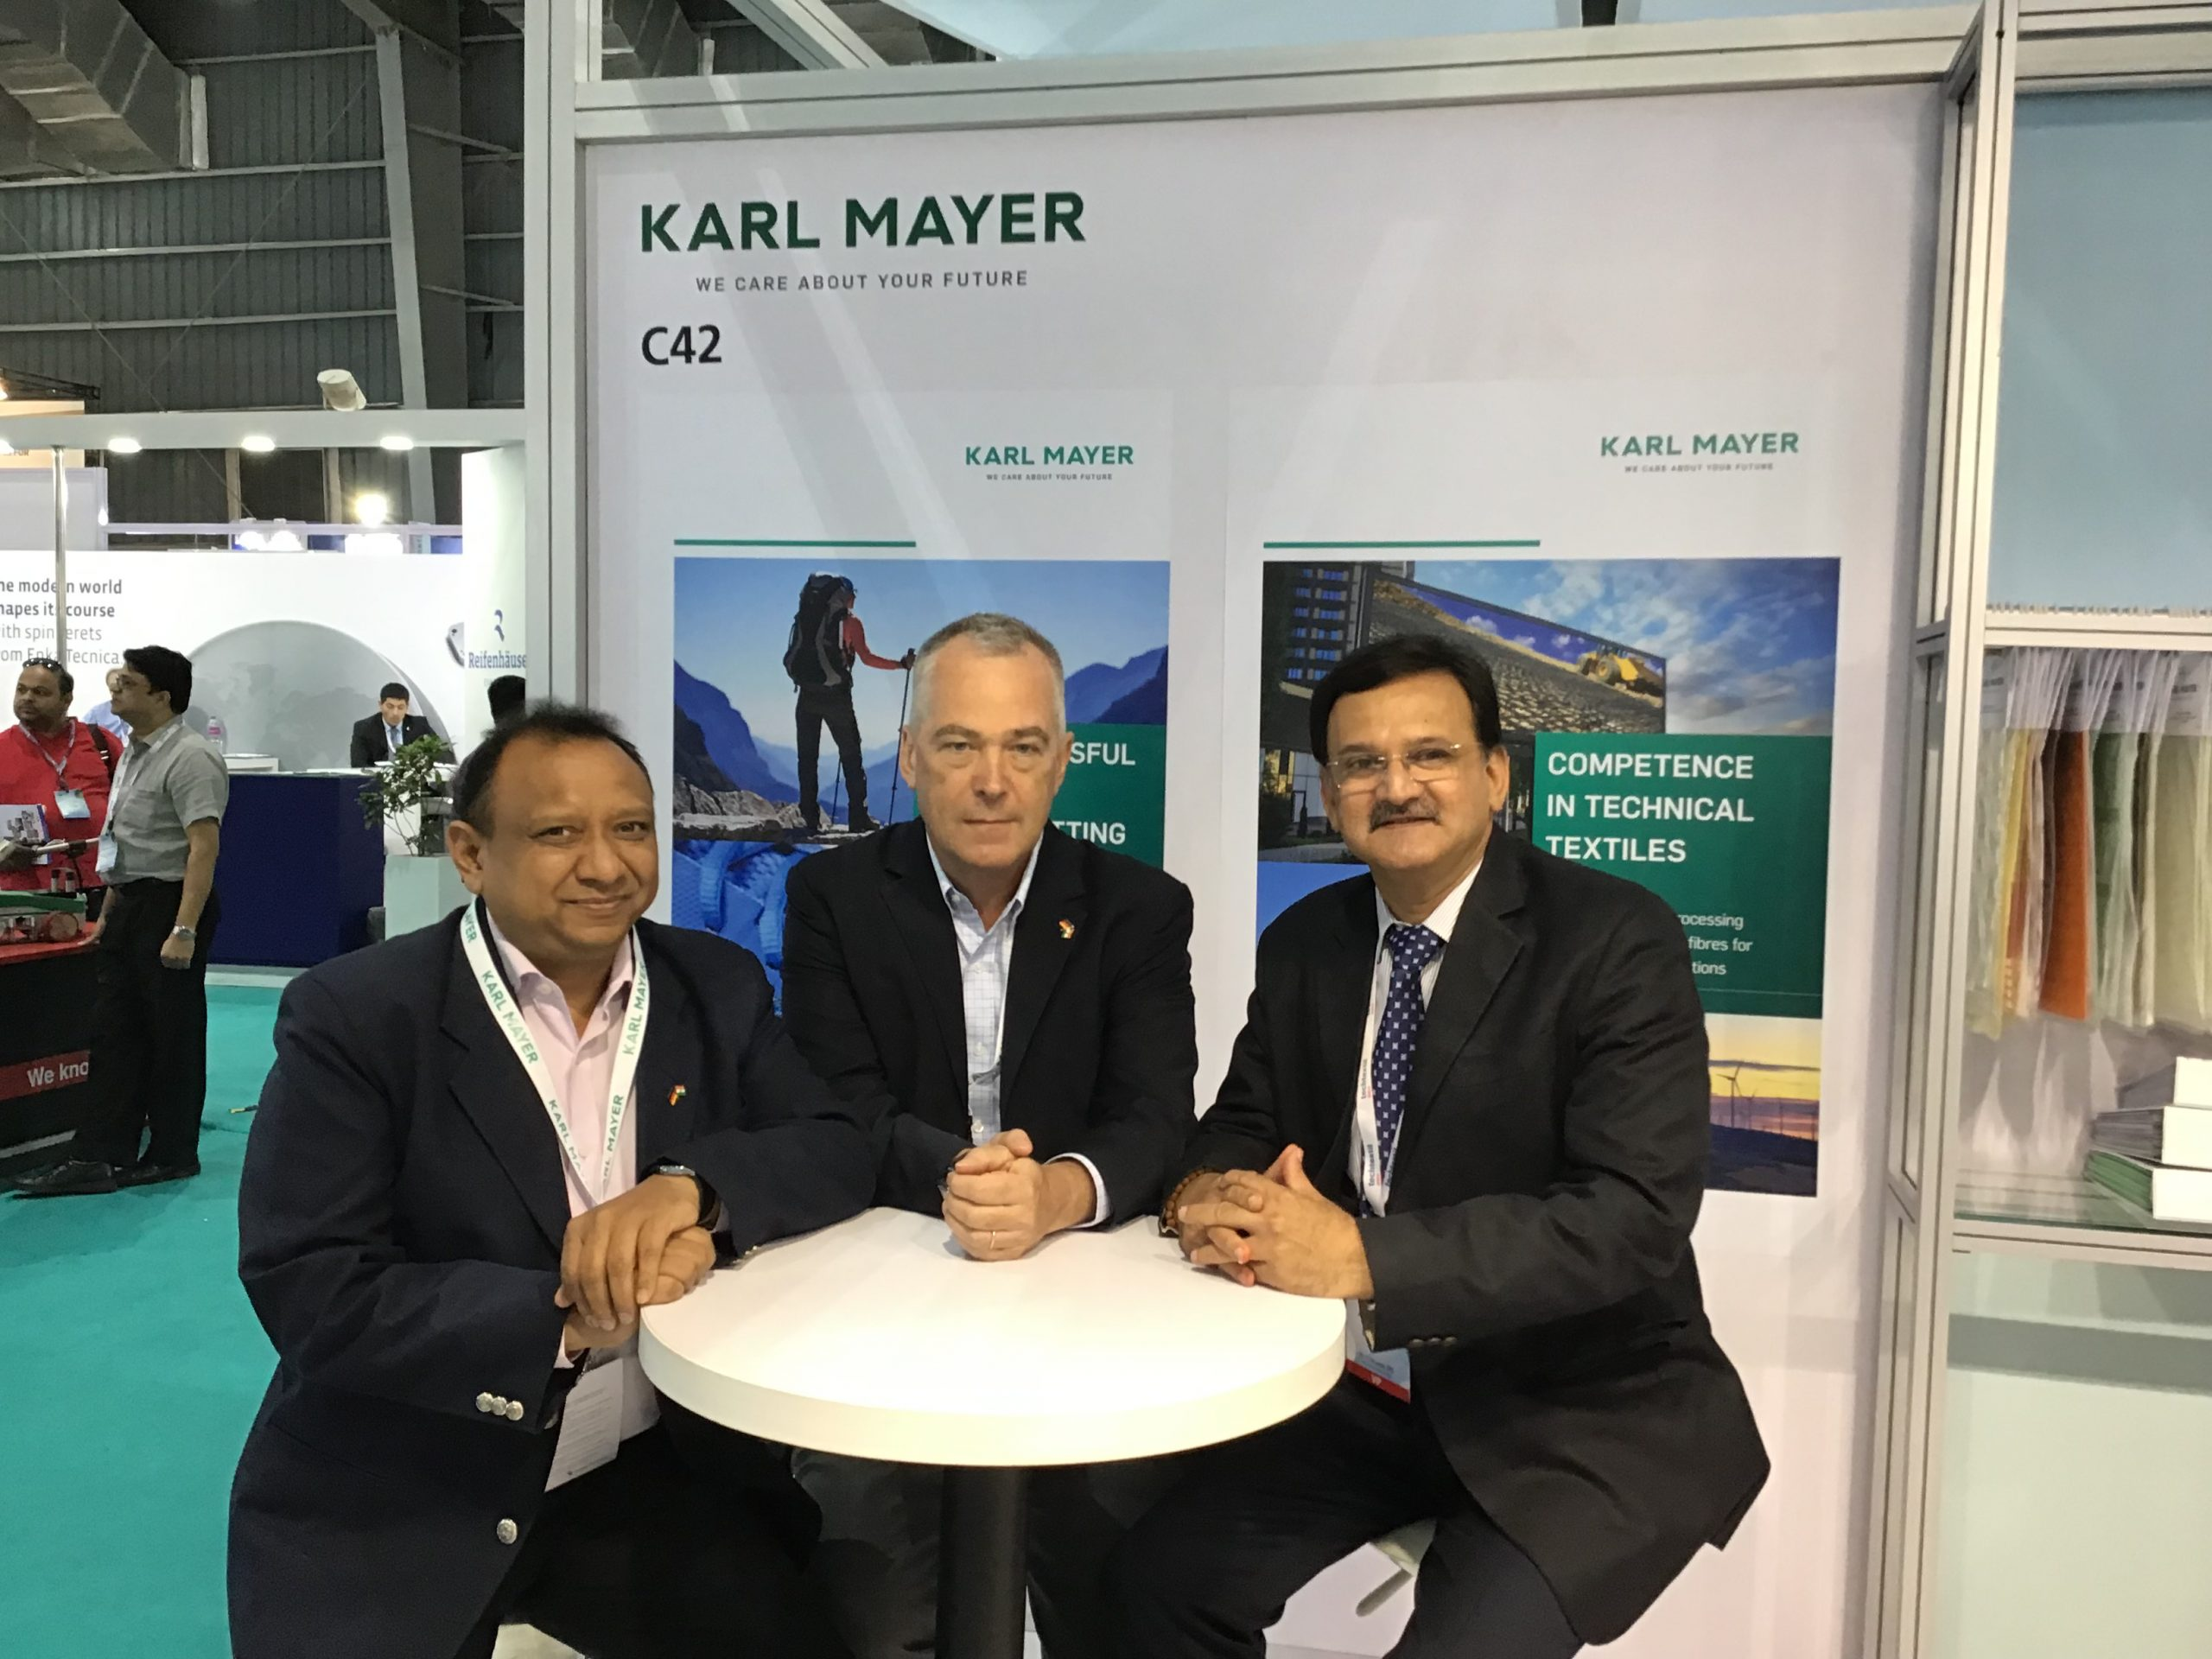 KARL MAYER technology with Industrie 4.0/IOT – Design Studio will change dynamics of market for both A and B segments